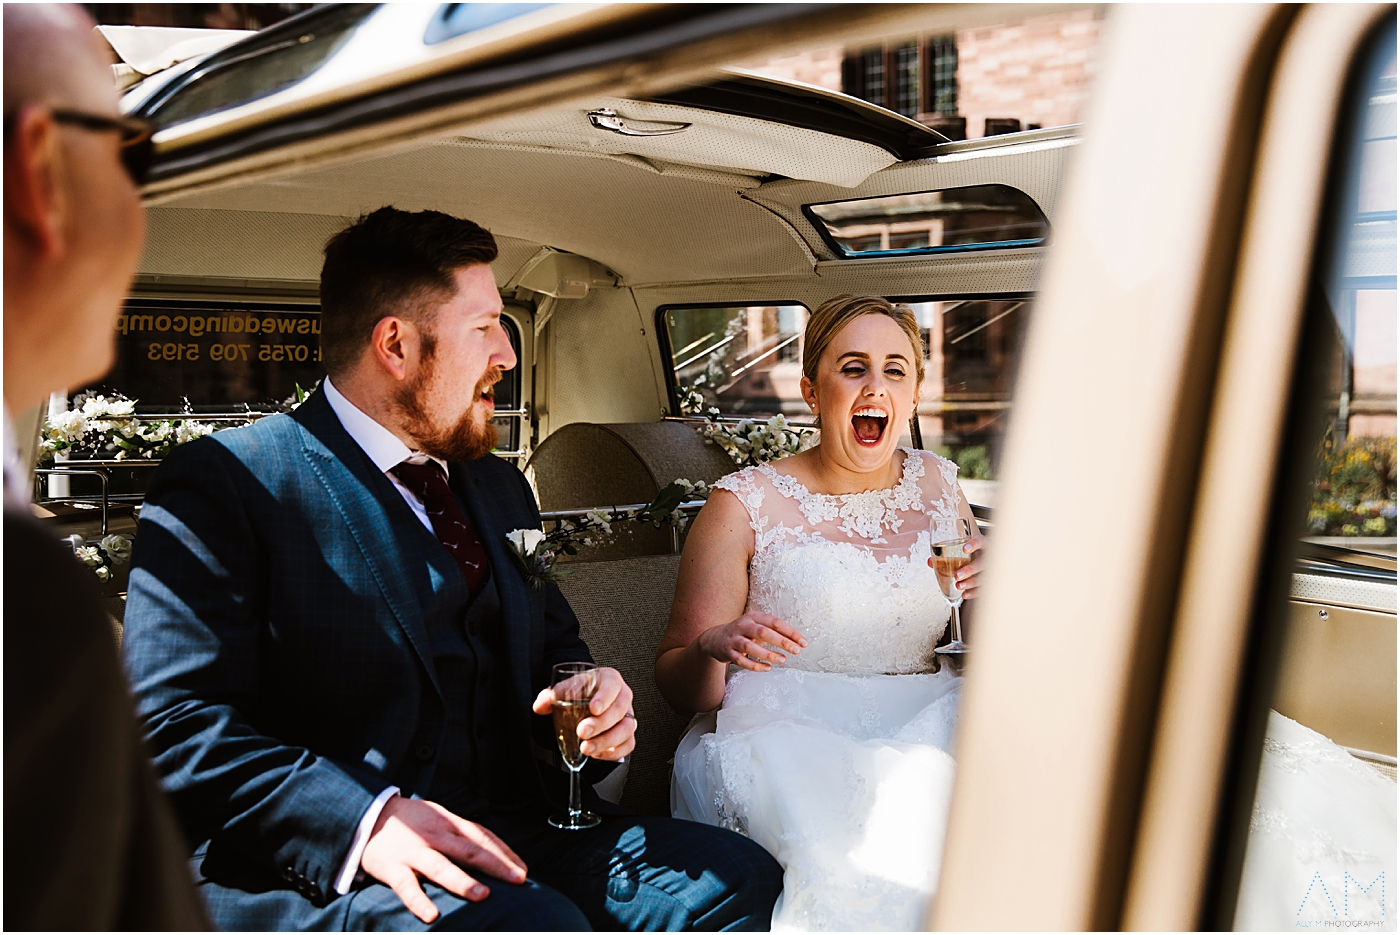 Bride and groom laughing in camper van